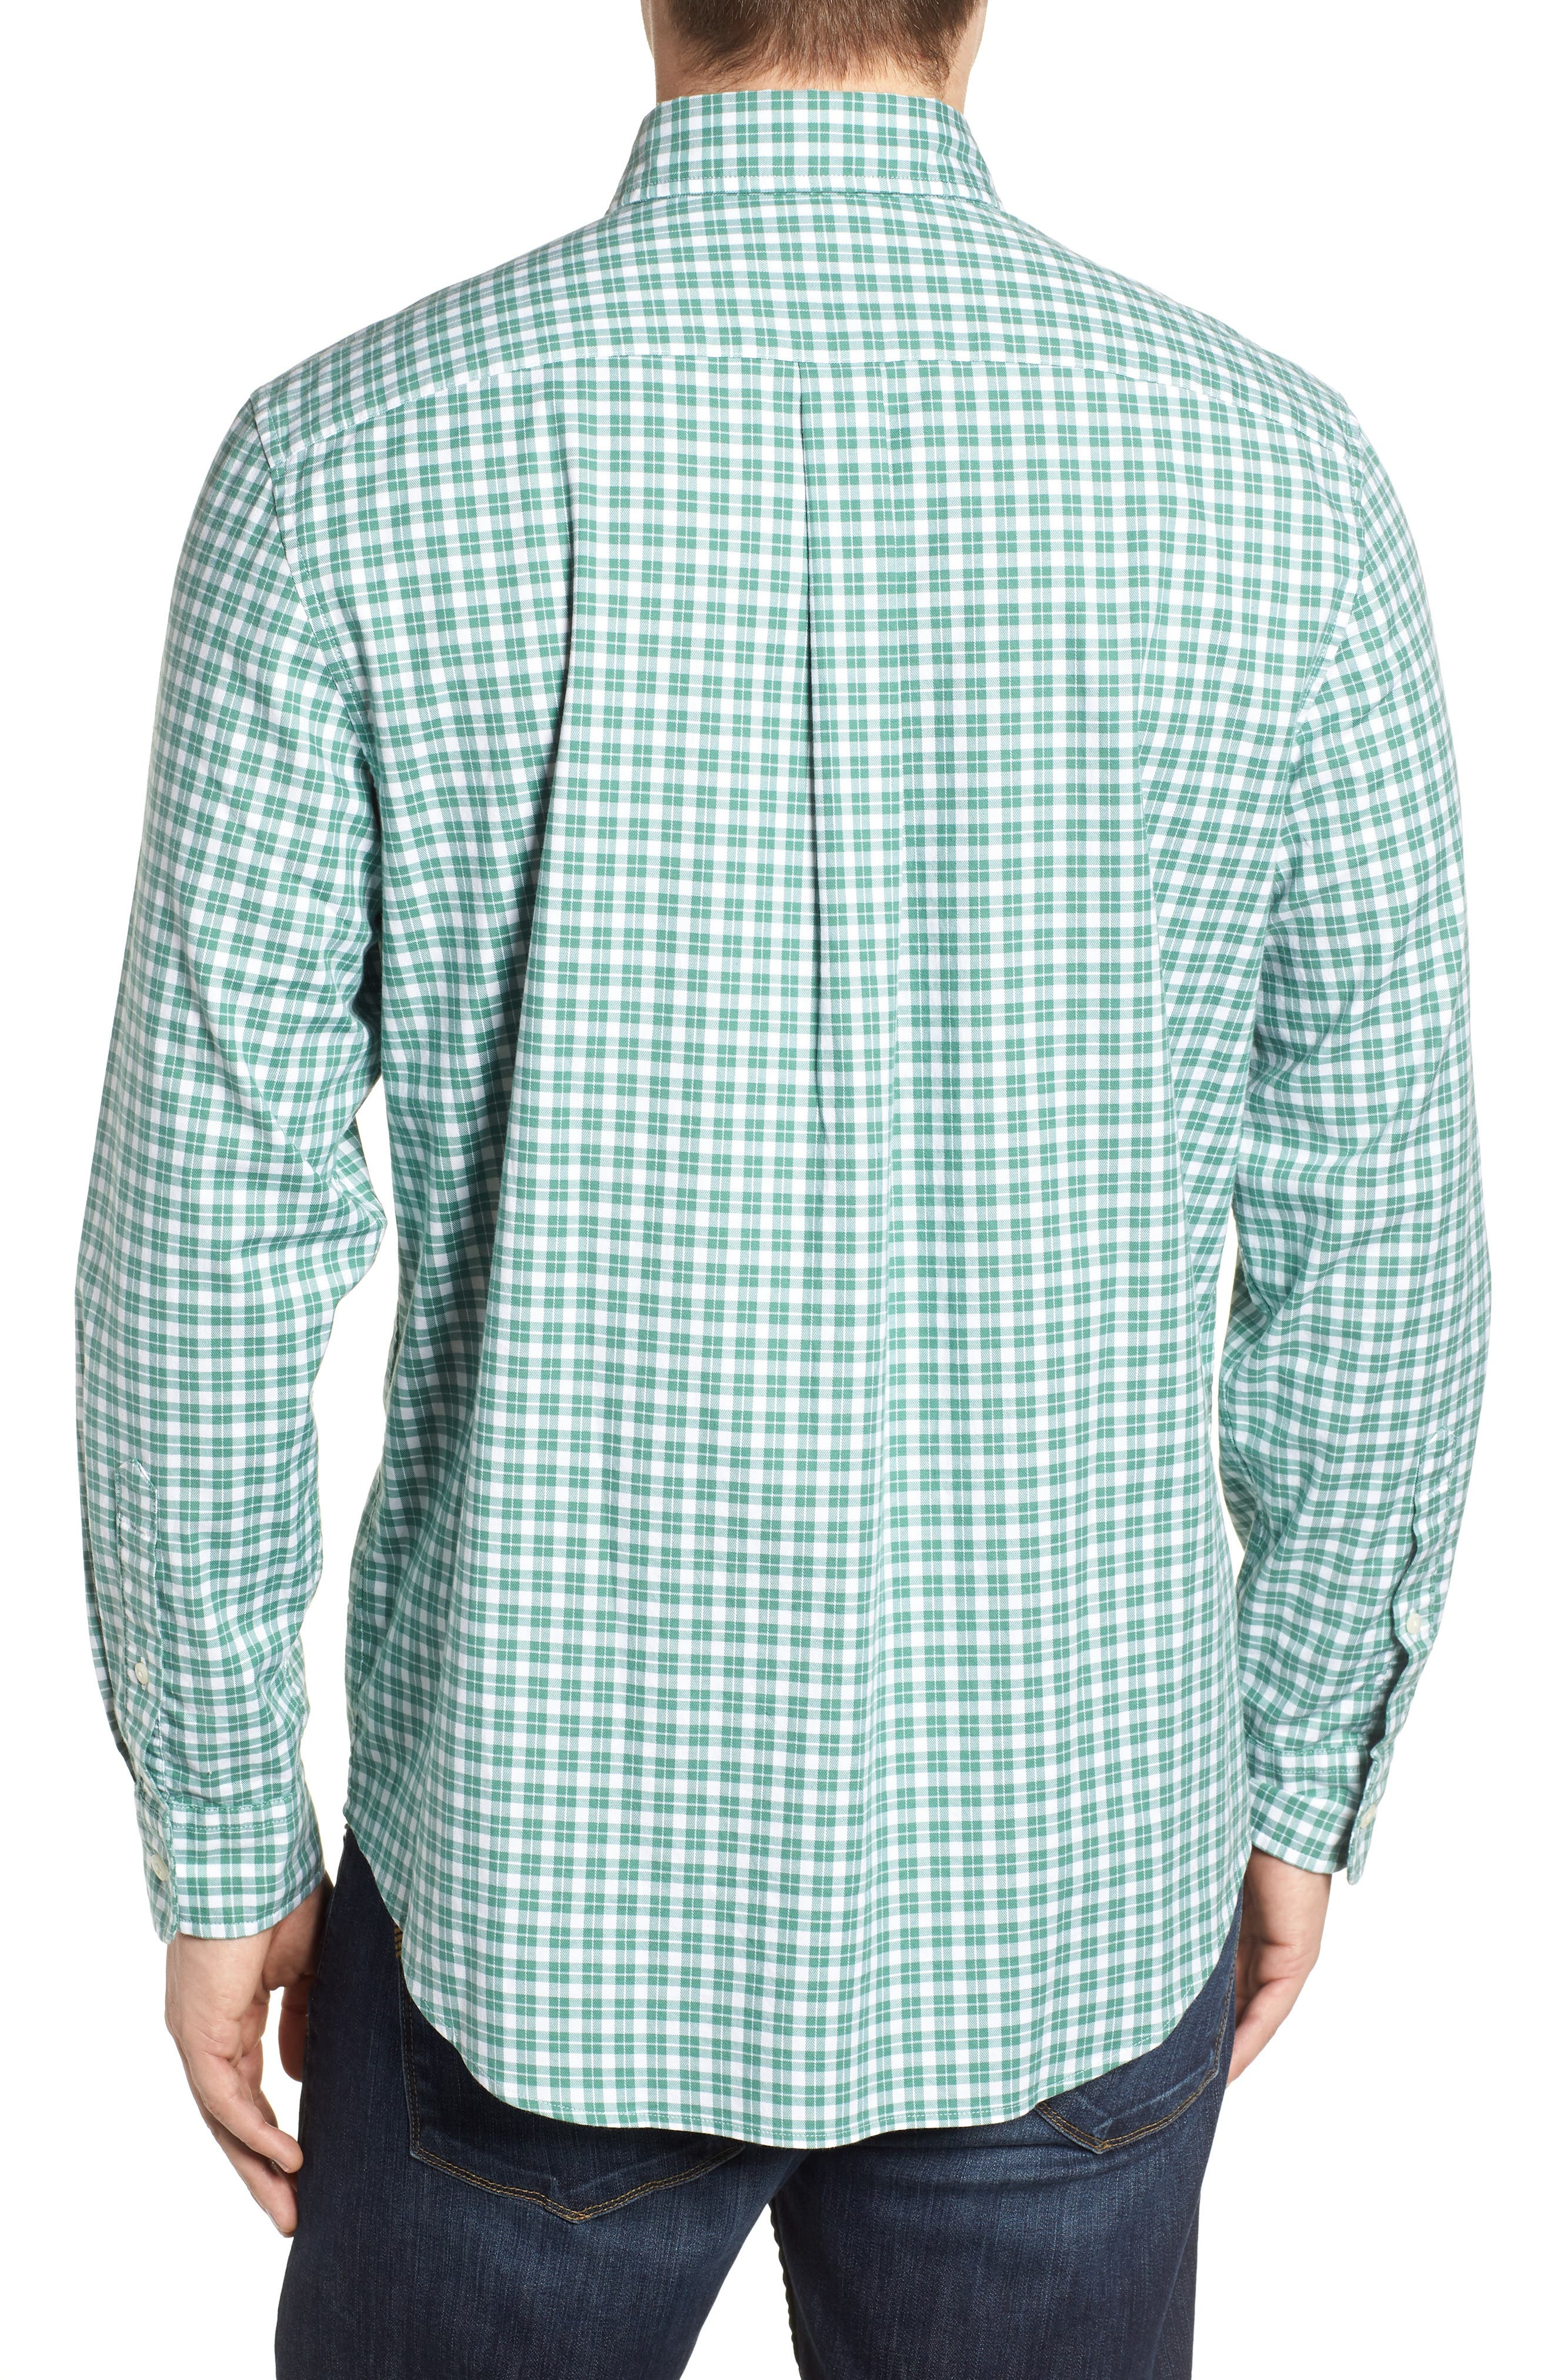 Eagle Hill Classic Fit Check Sport Shirt,                             Alternate thumbnail 3, color,                             STARBOARD GREEN